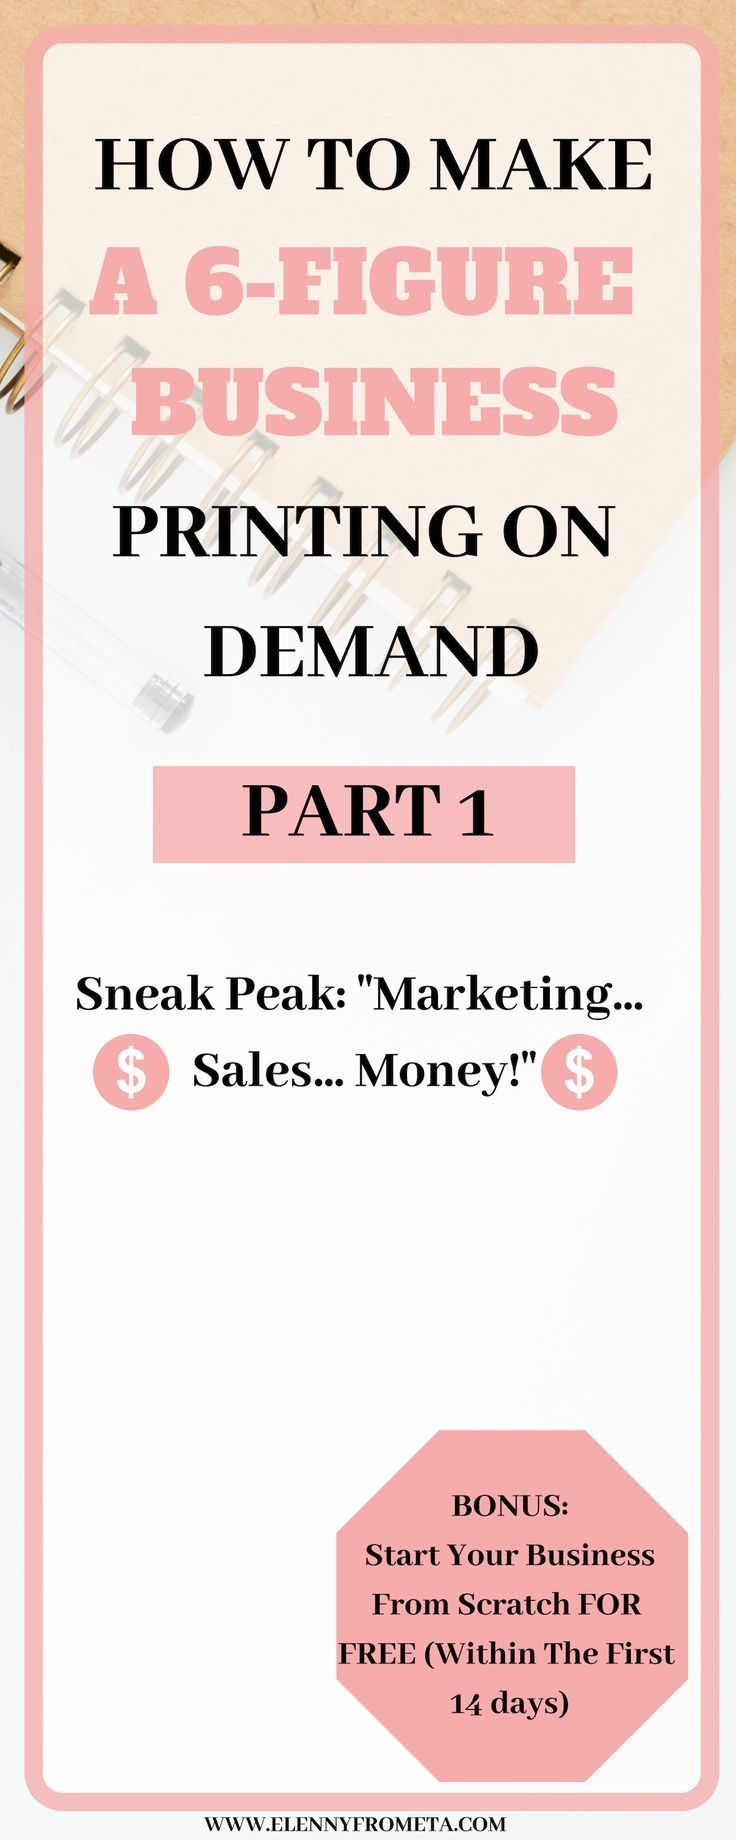 How to Make a 6-Figure Business Printing on Demand (PART 1